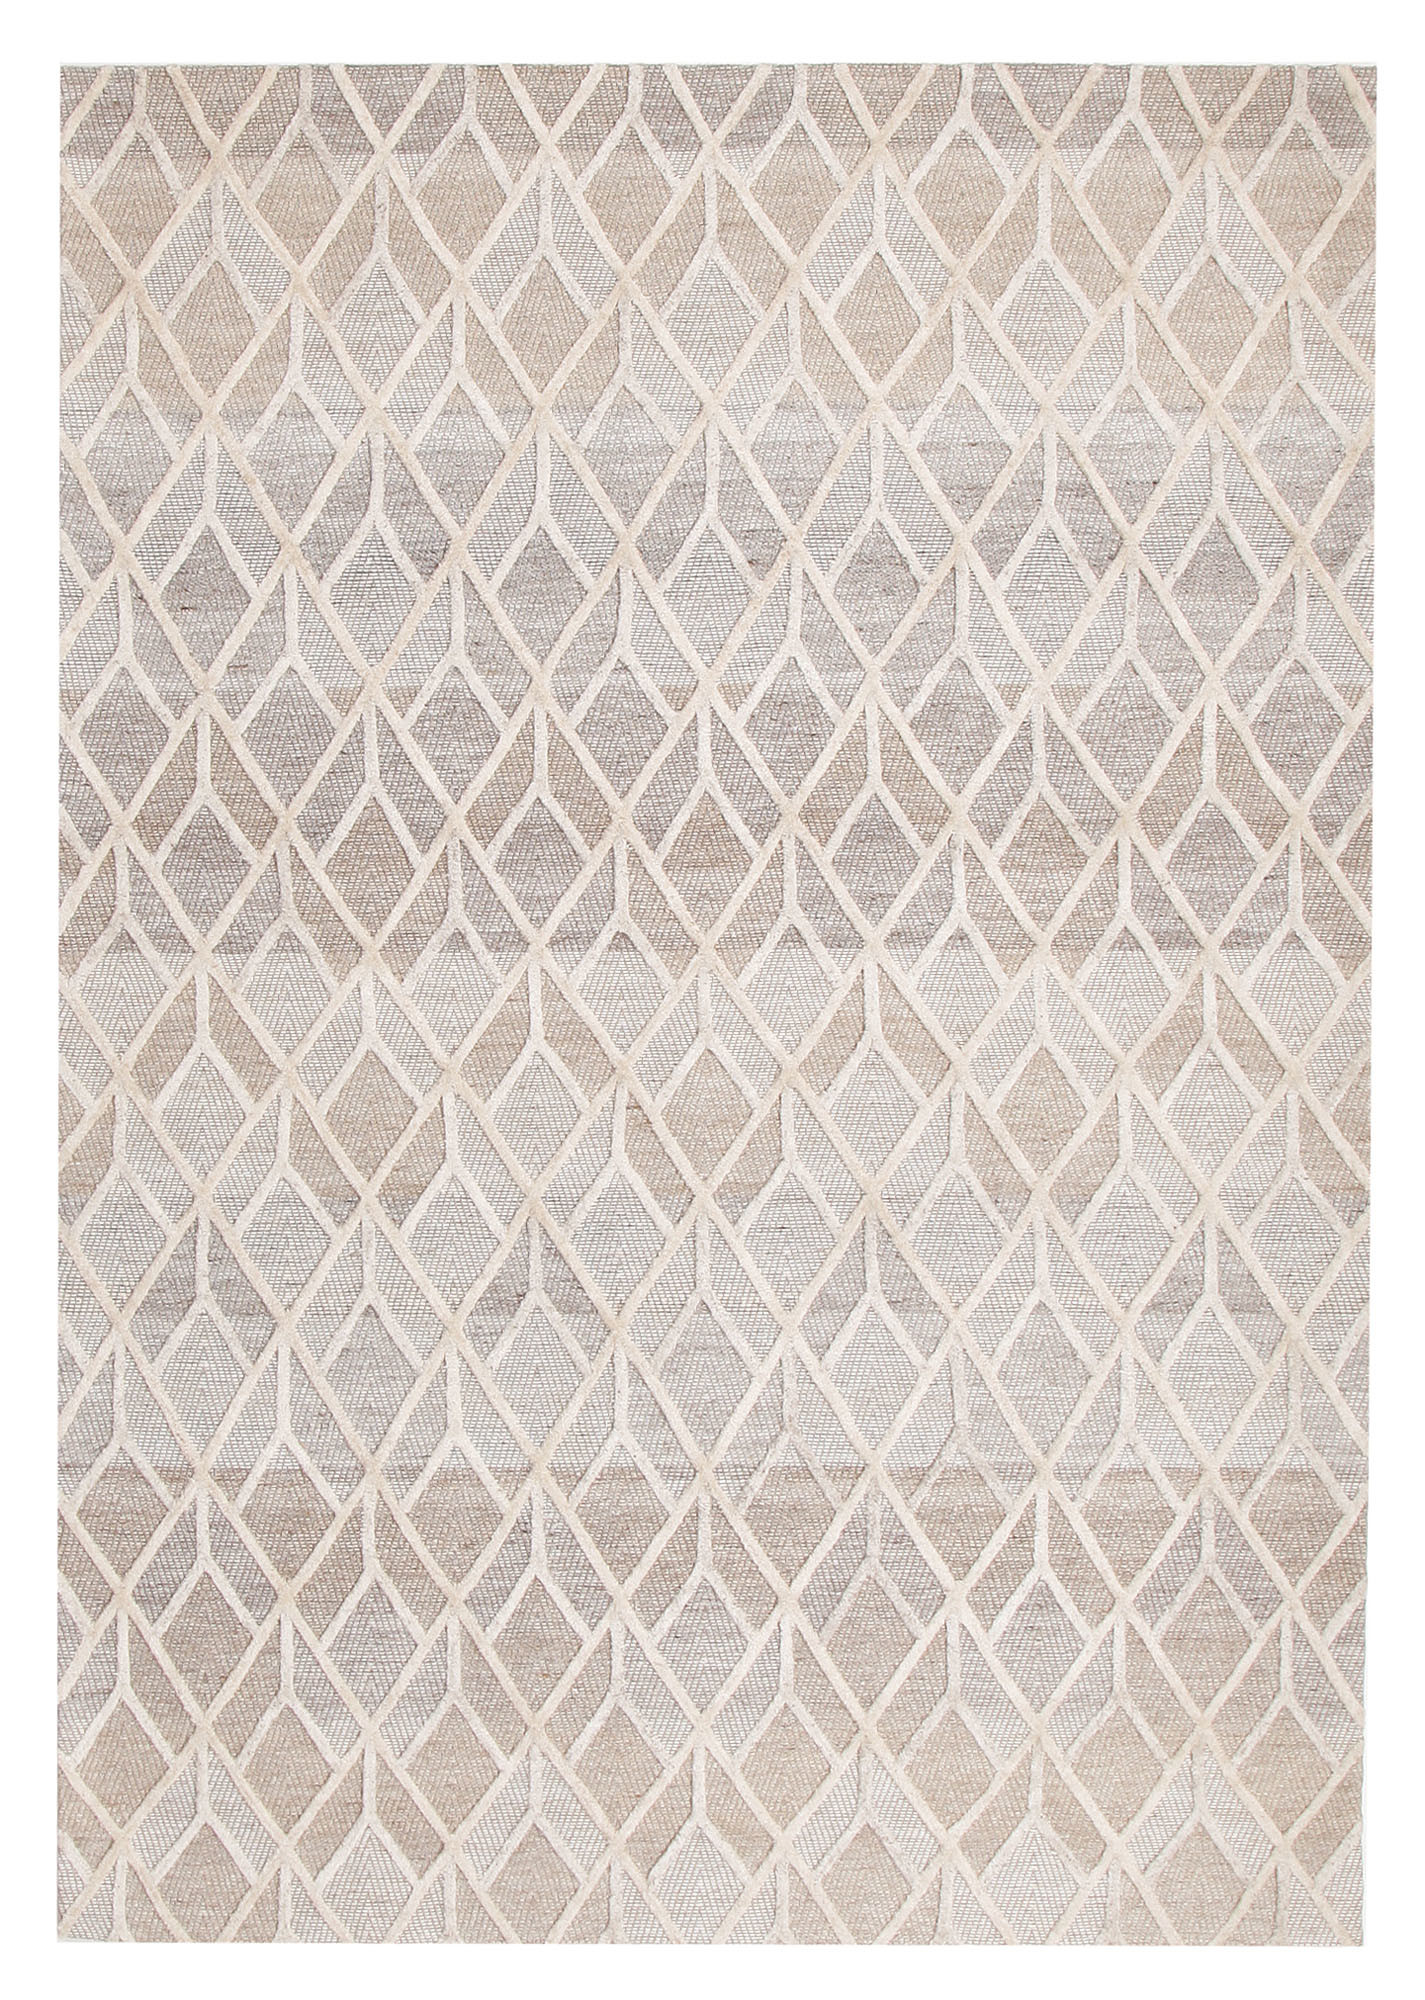 Large Rugs Sydney Clyde Jacquard Wool Viscose Modern Rug